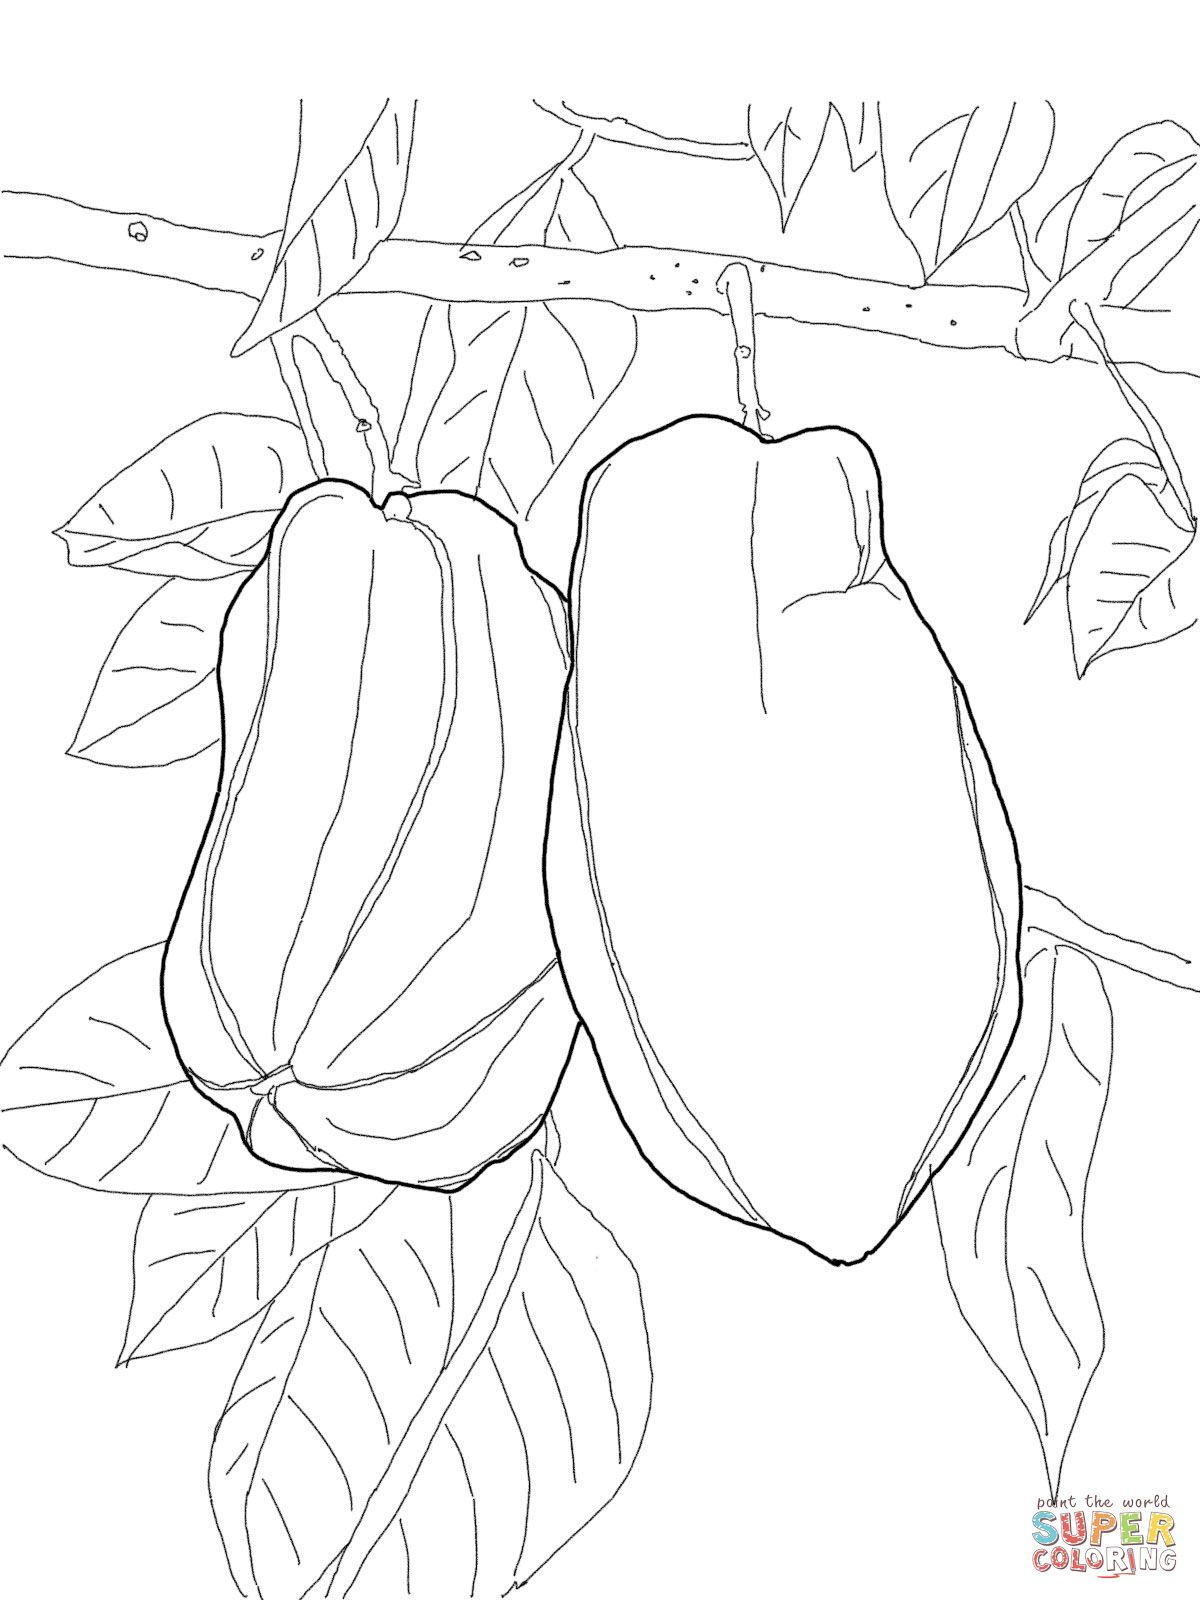 Star Fruit on Tree Super Coloring Art Coloring Pages